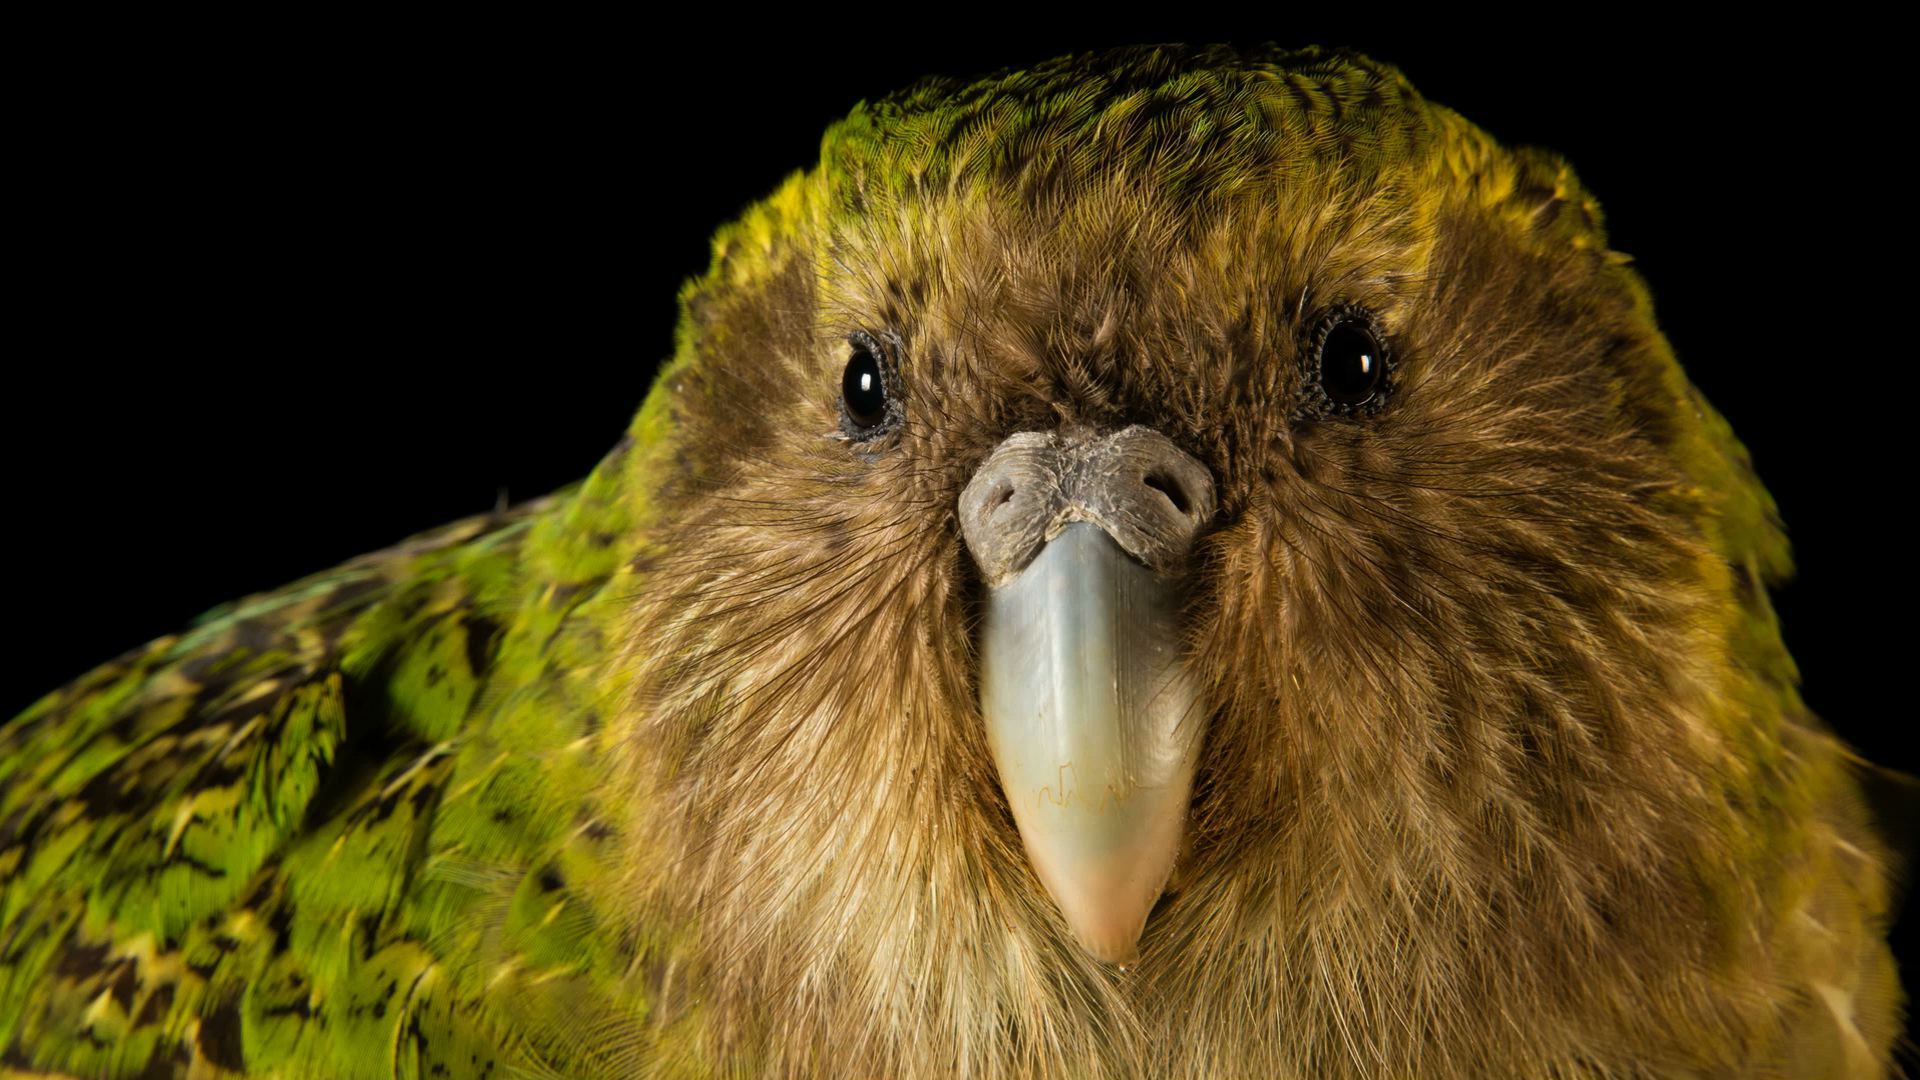 A Kākāpō Love Story - 1:52 - Scientists in New Zealand are working to save this curious-looking bird from extinction.